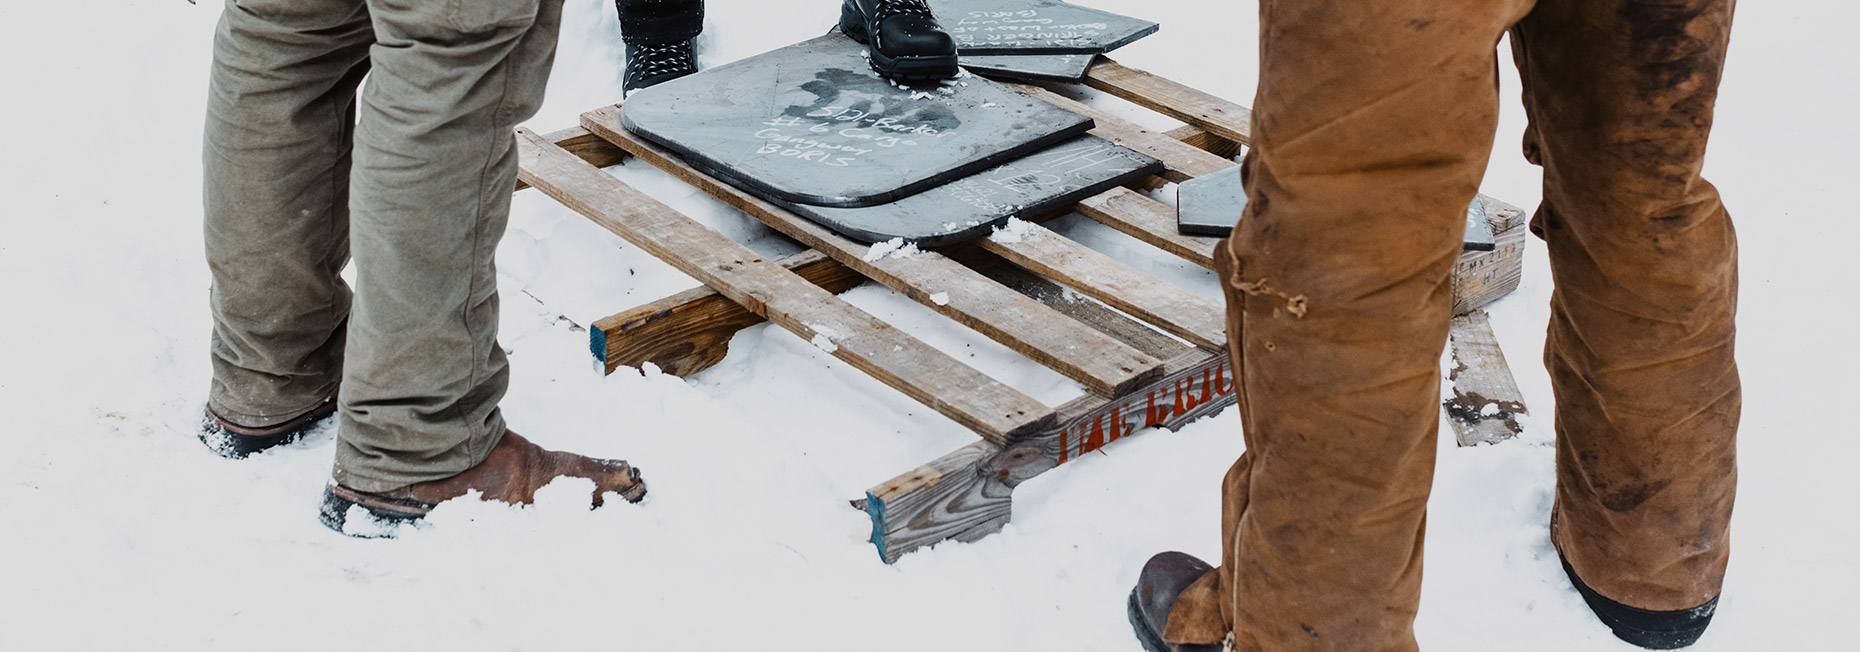 People standing around a wooden palet in the snow, wearing insulated leather CAT boots.